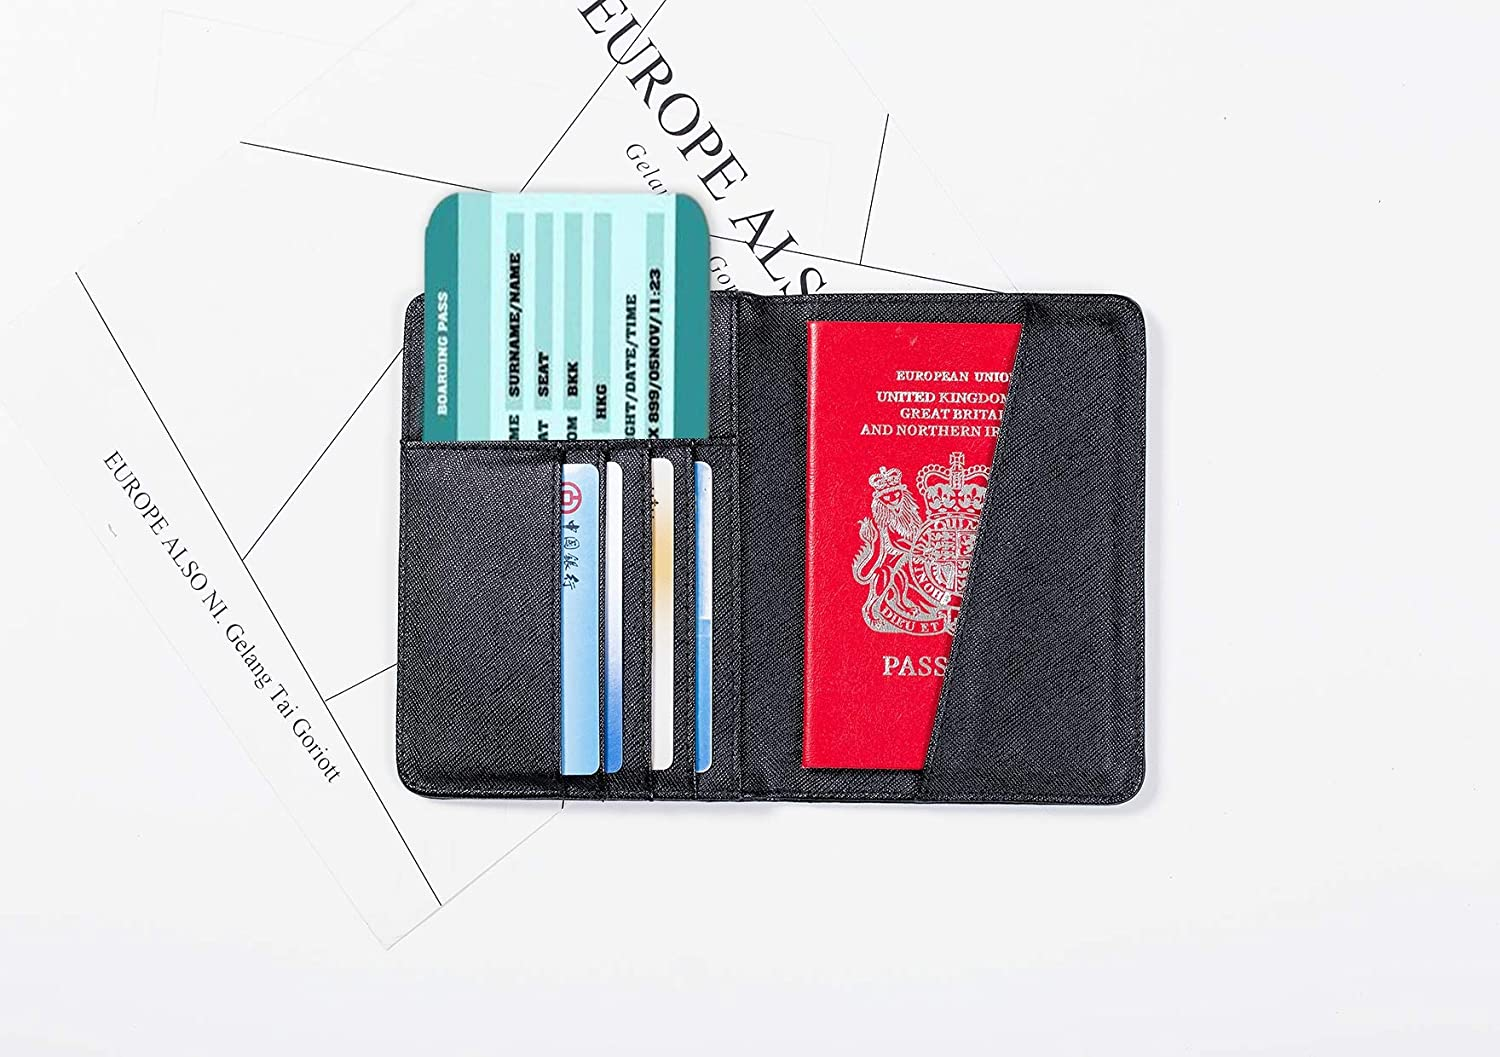 Waterproof Passport Cover Cute Retro Ostrich Flower Green Leaf Cool Passport Case Multi Purpose Print Leather Passport Cover Holder Travel Wallets For Unisex 5.51x4.37 Inch